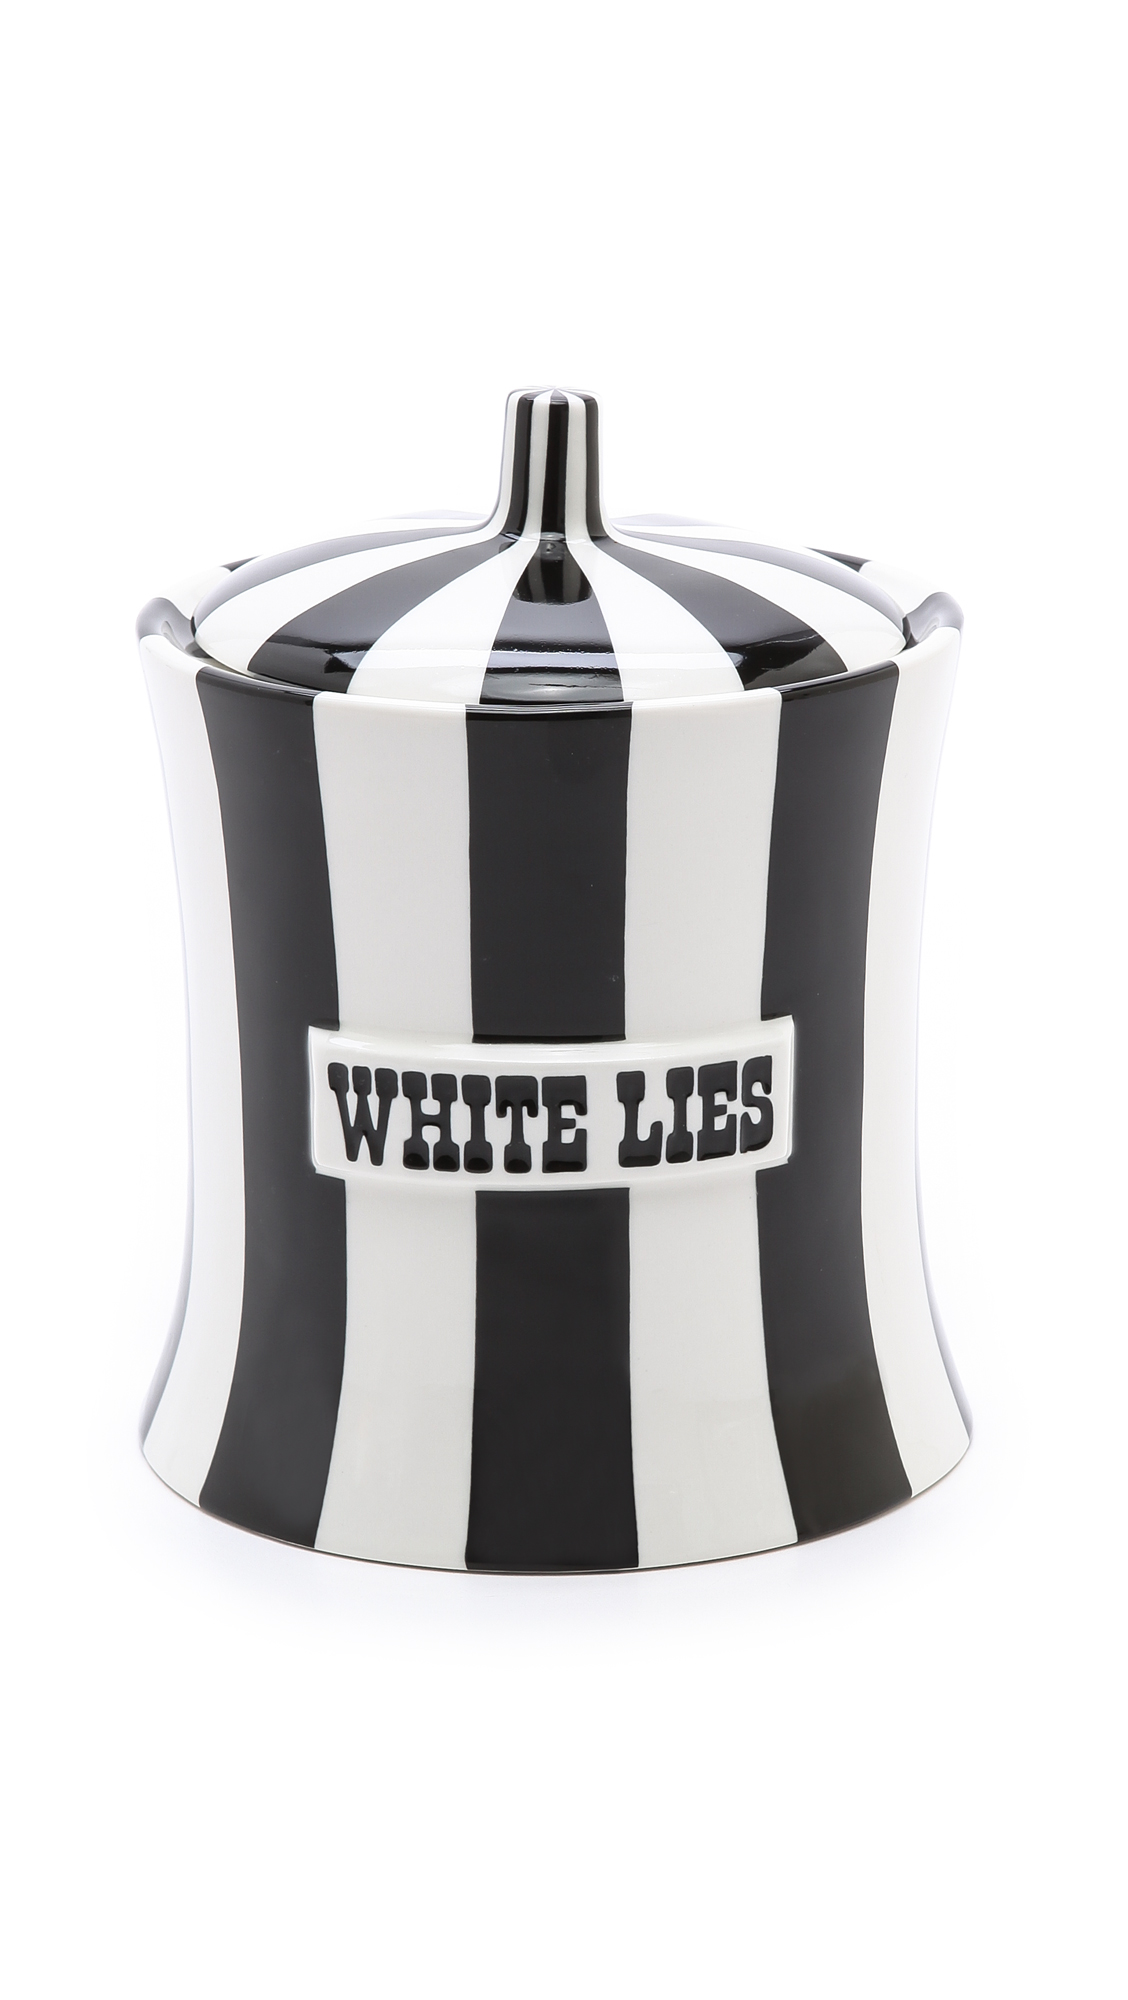 Jonathan Adler White Lies Canister - Black/White